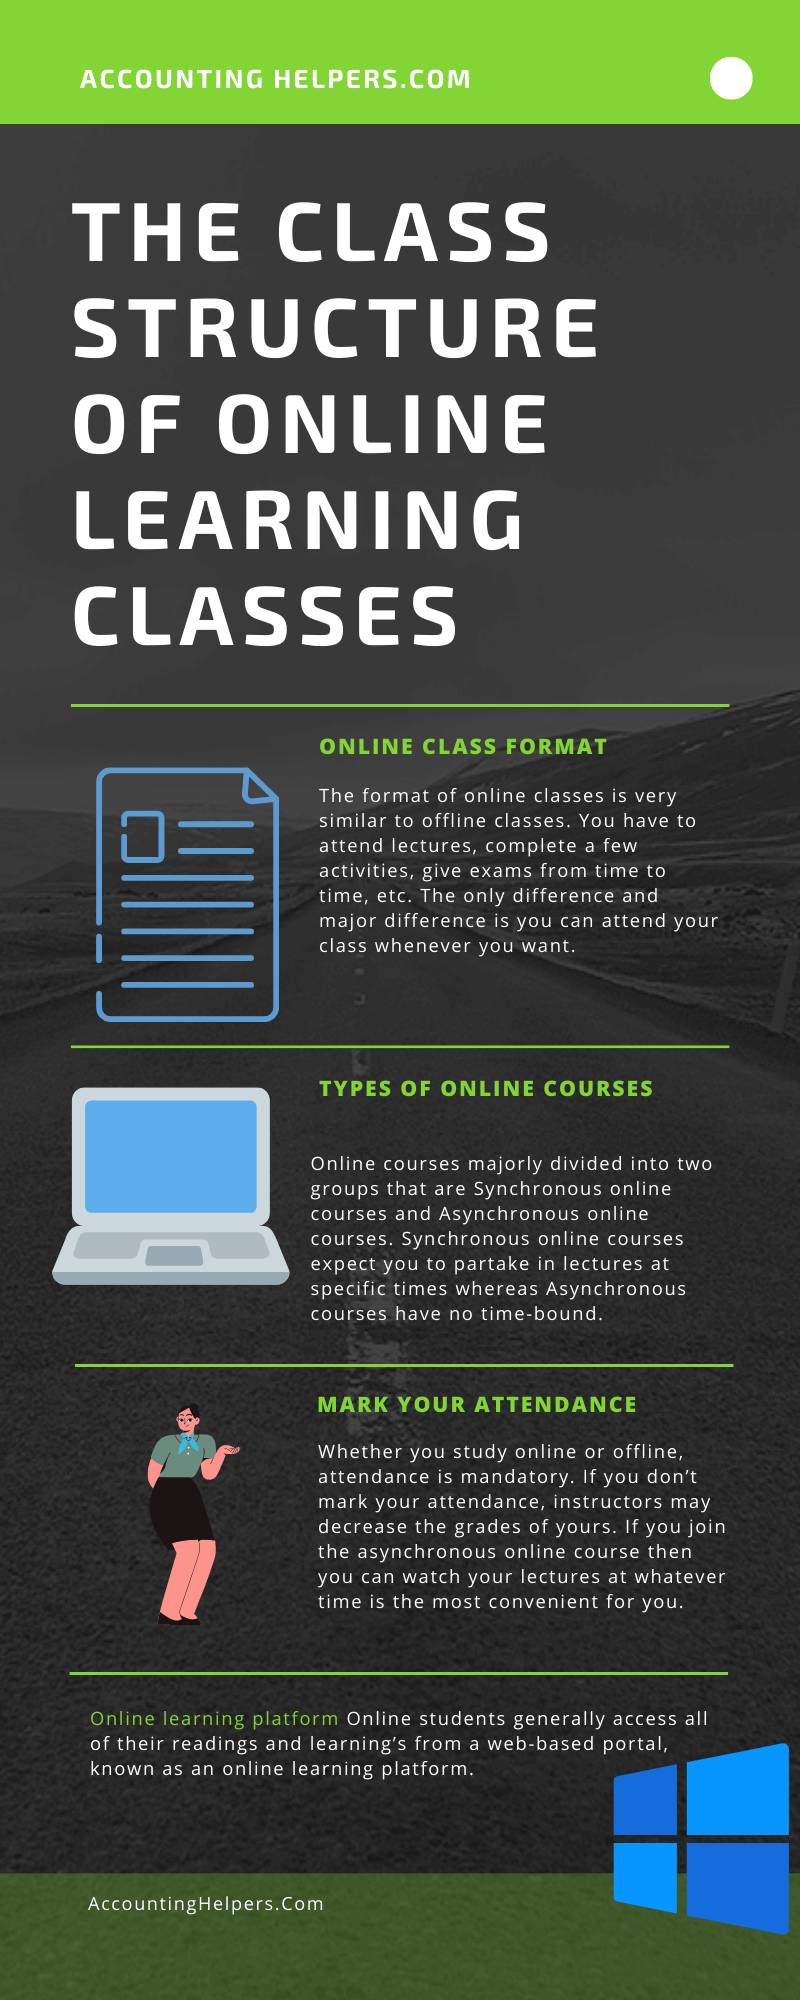 Get to know about the structure of online classes